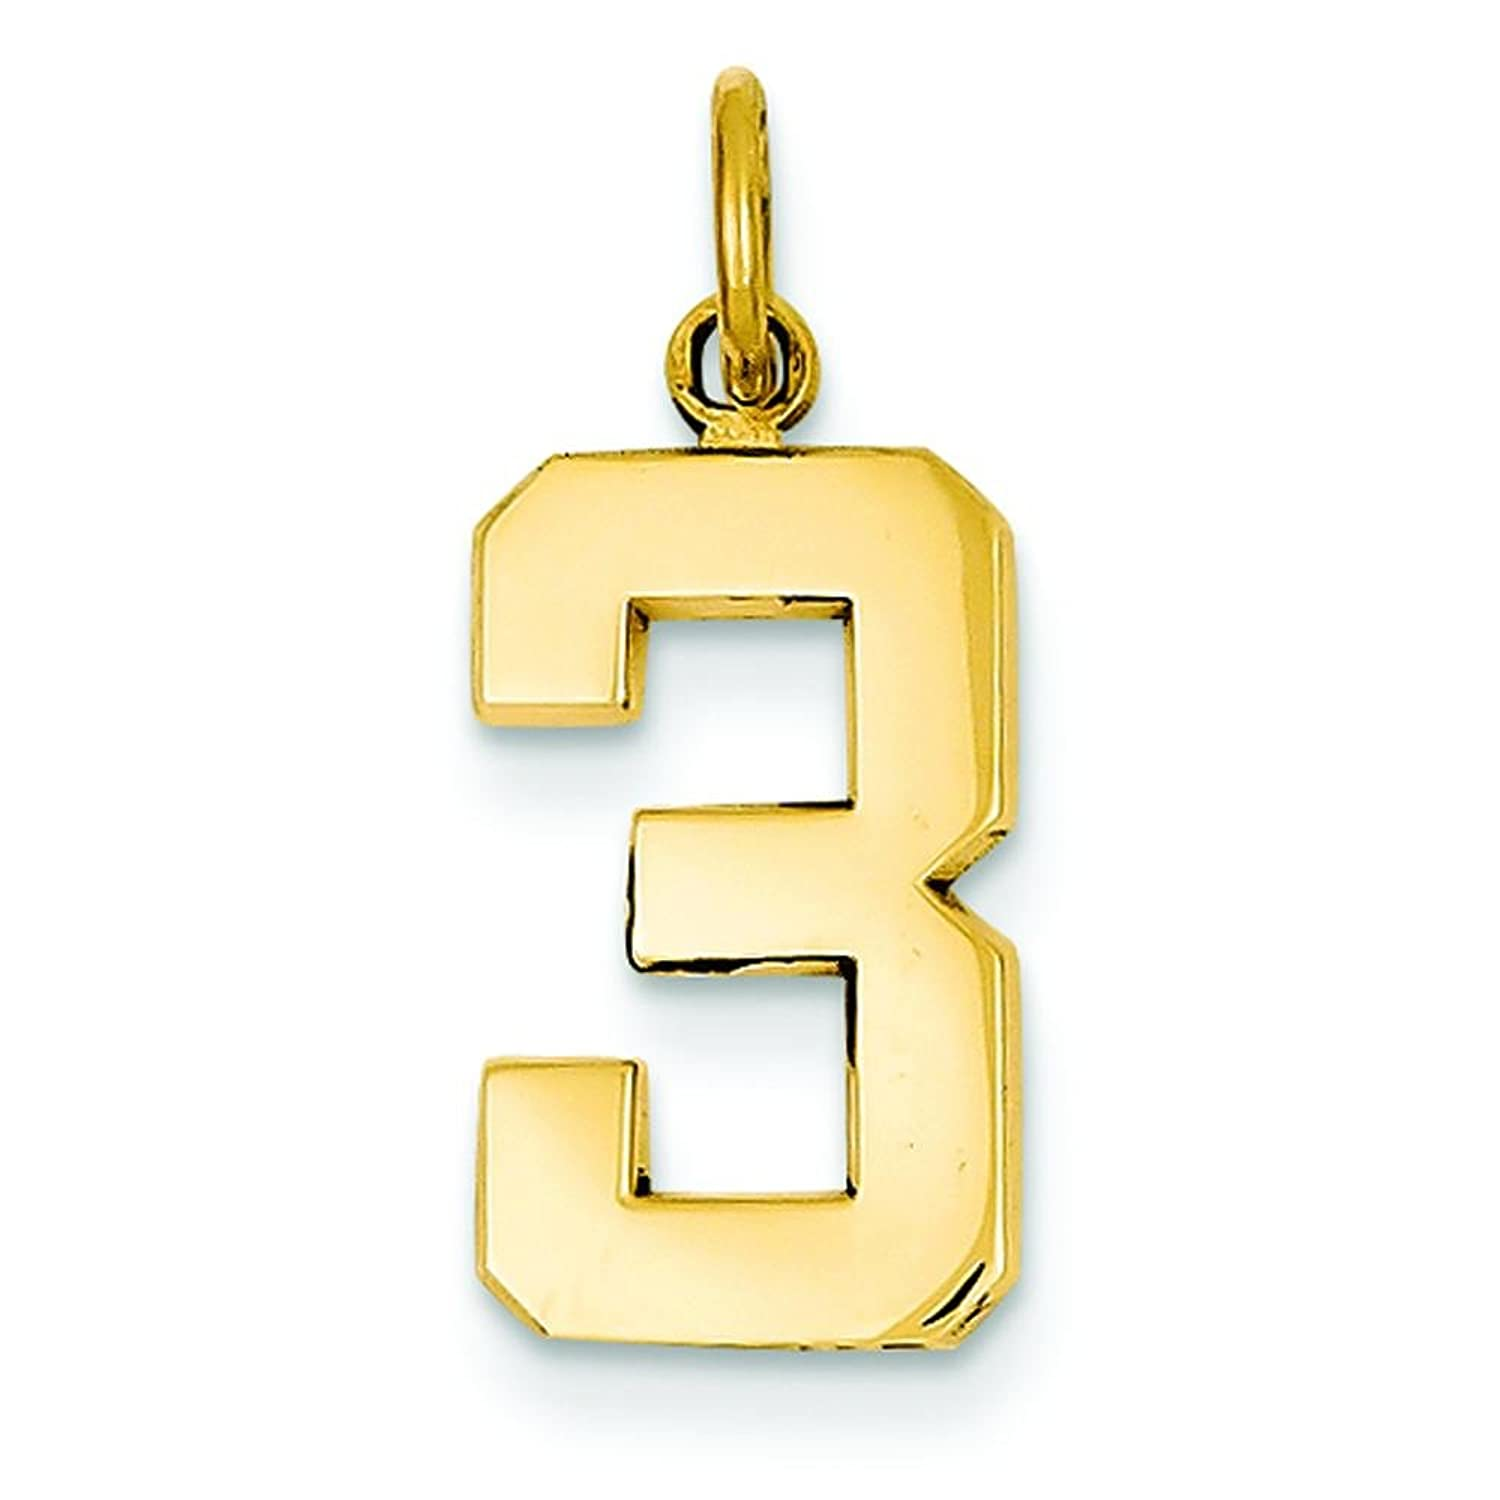 Amazon 14k gold medium polished number 3 charm pendant jewelry amazon 14k gold medium polished number 3 charm pendant jewelry jewelry mozeypictures Image collections